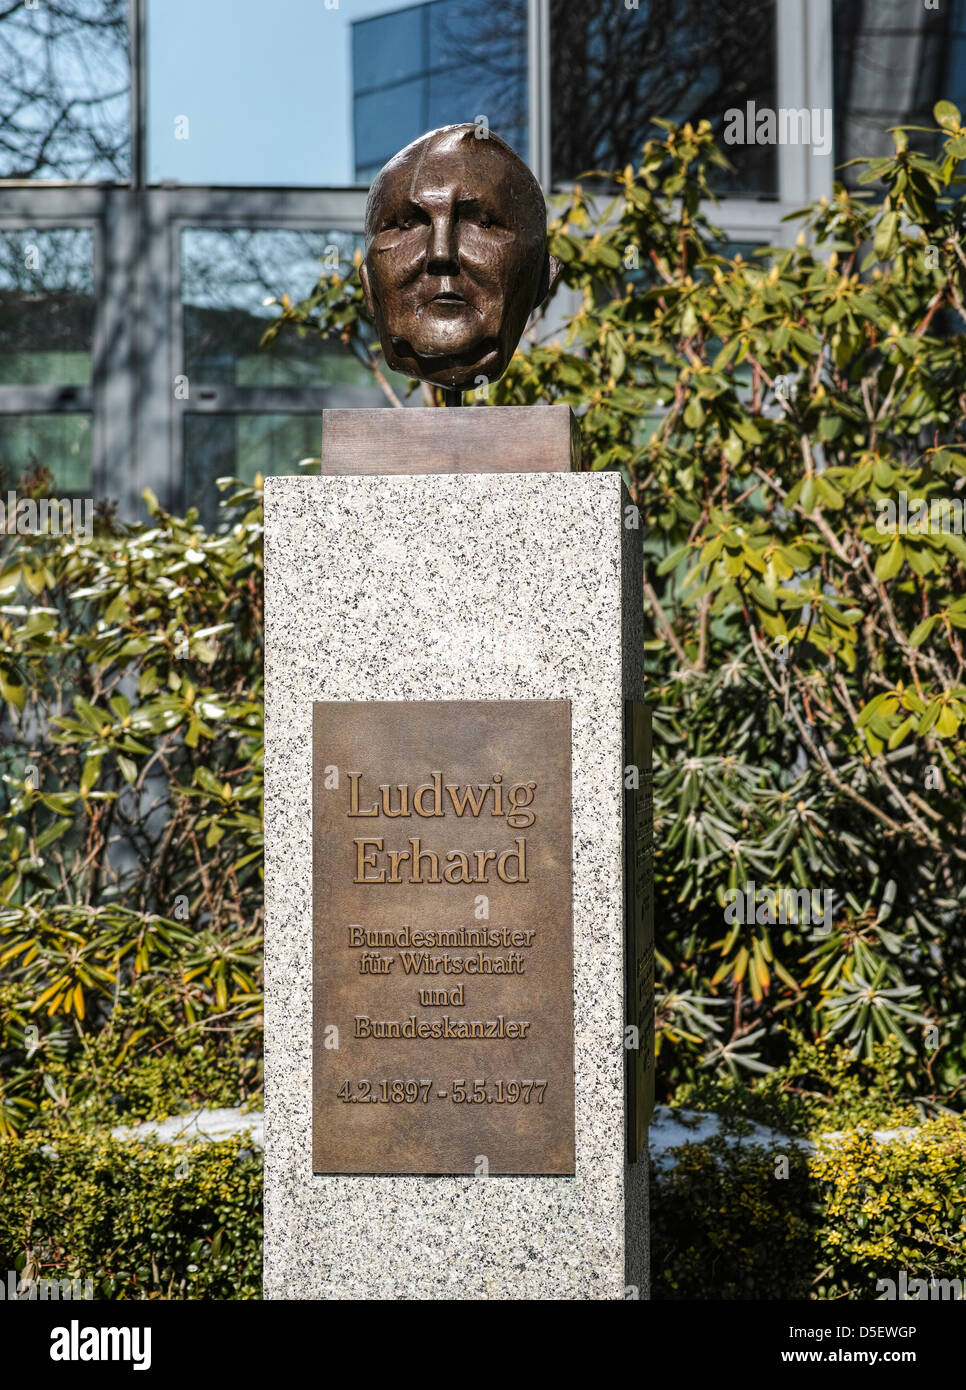 Bust of Ludwig Erhard Chancellor of West Germany from 1963 until 1966 - Stock Image